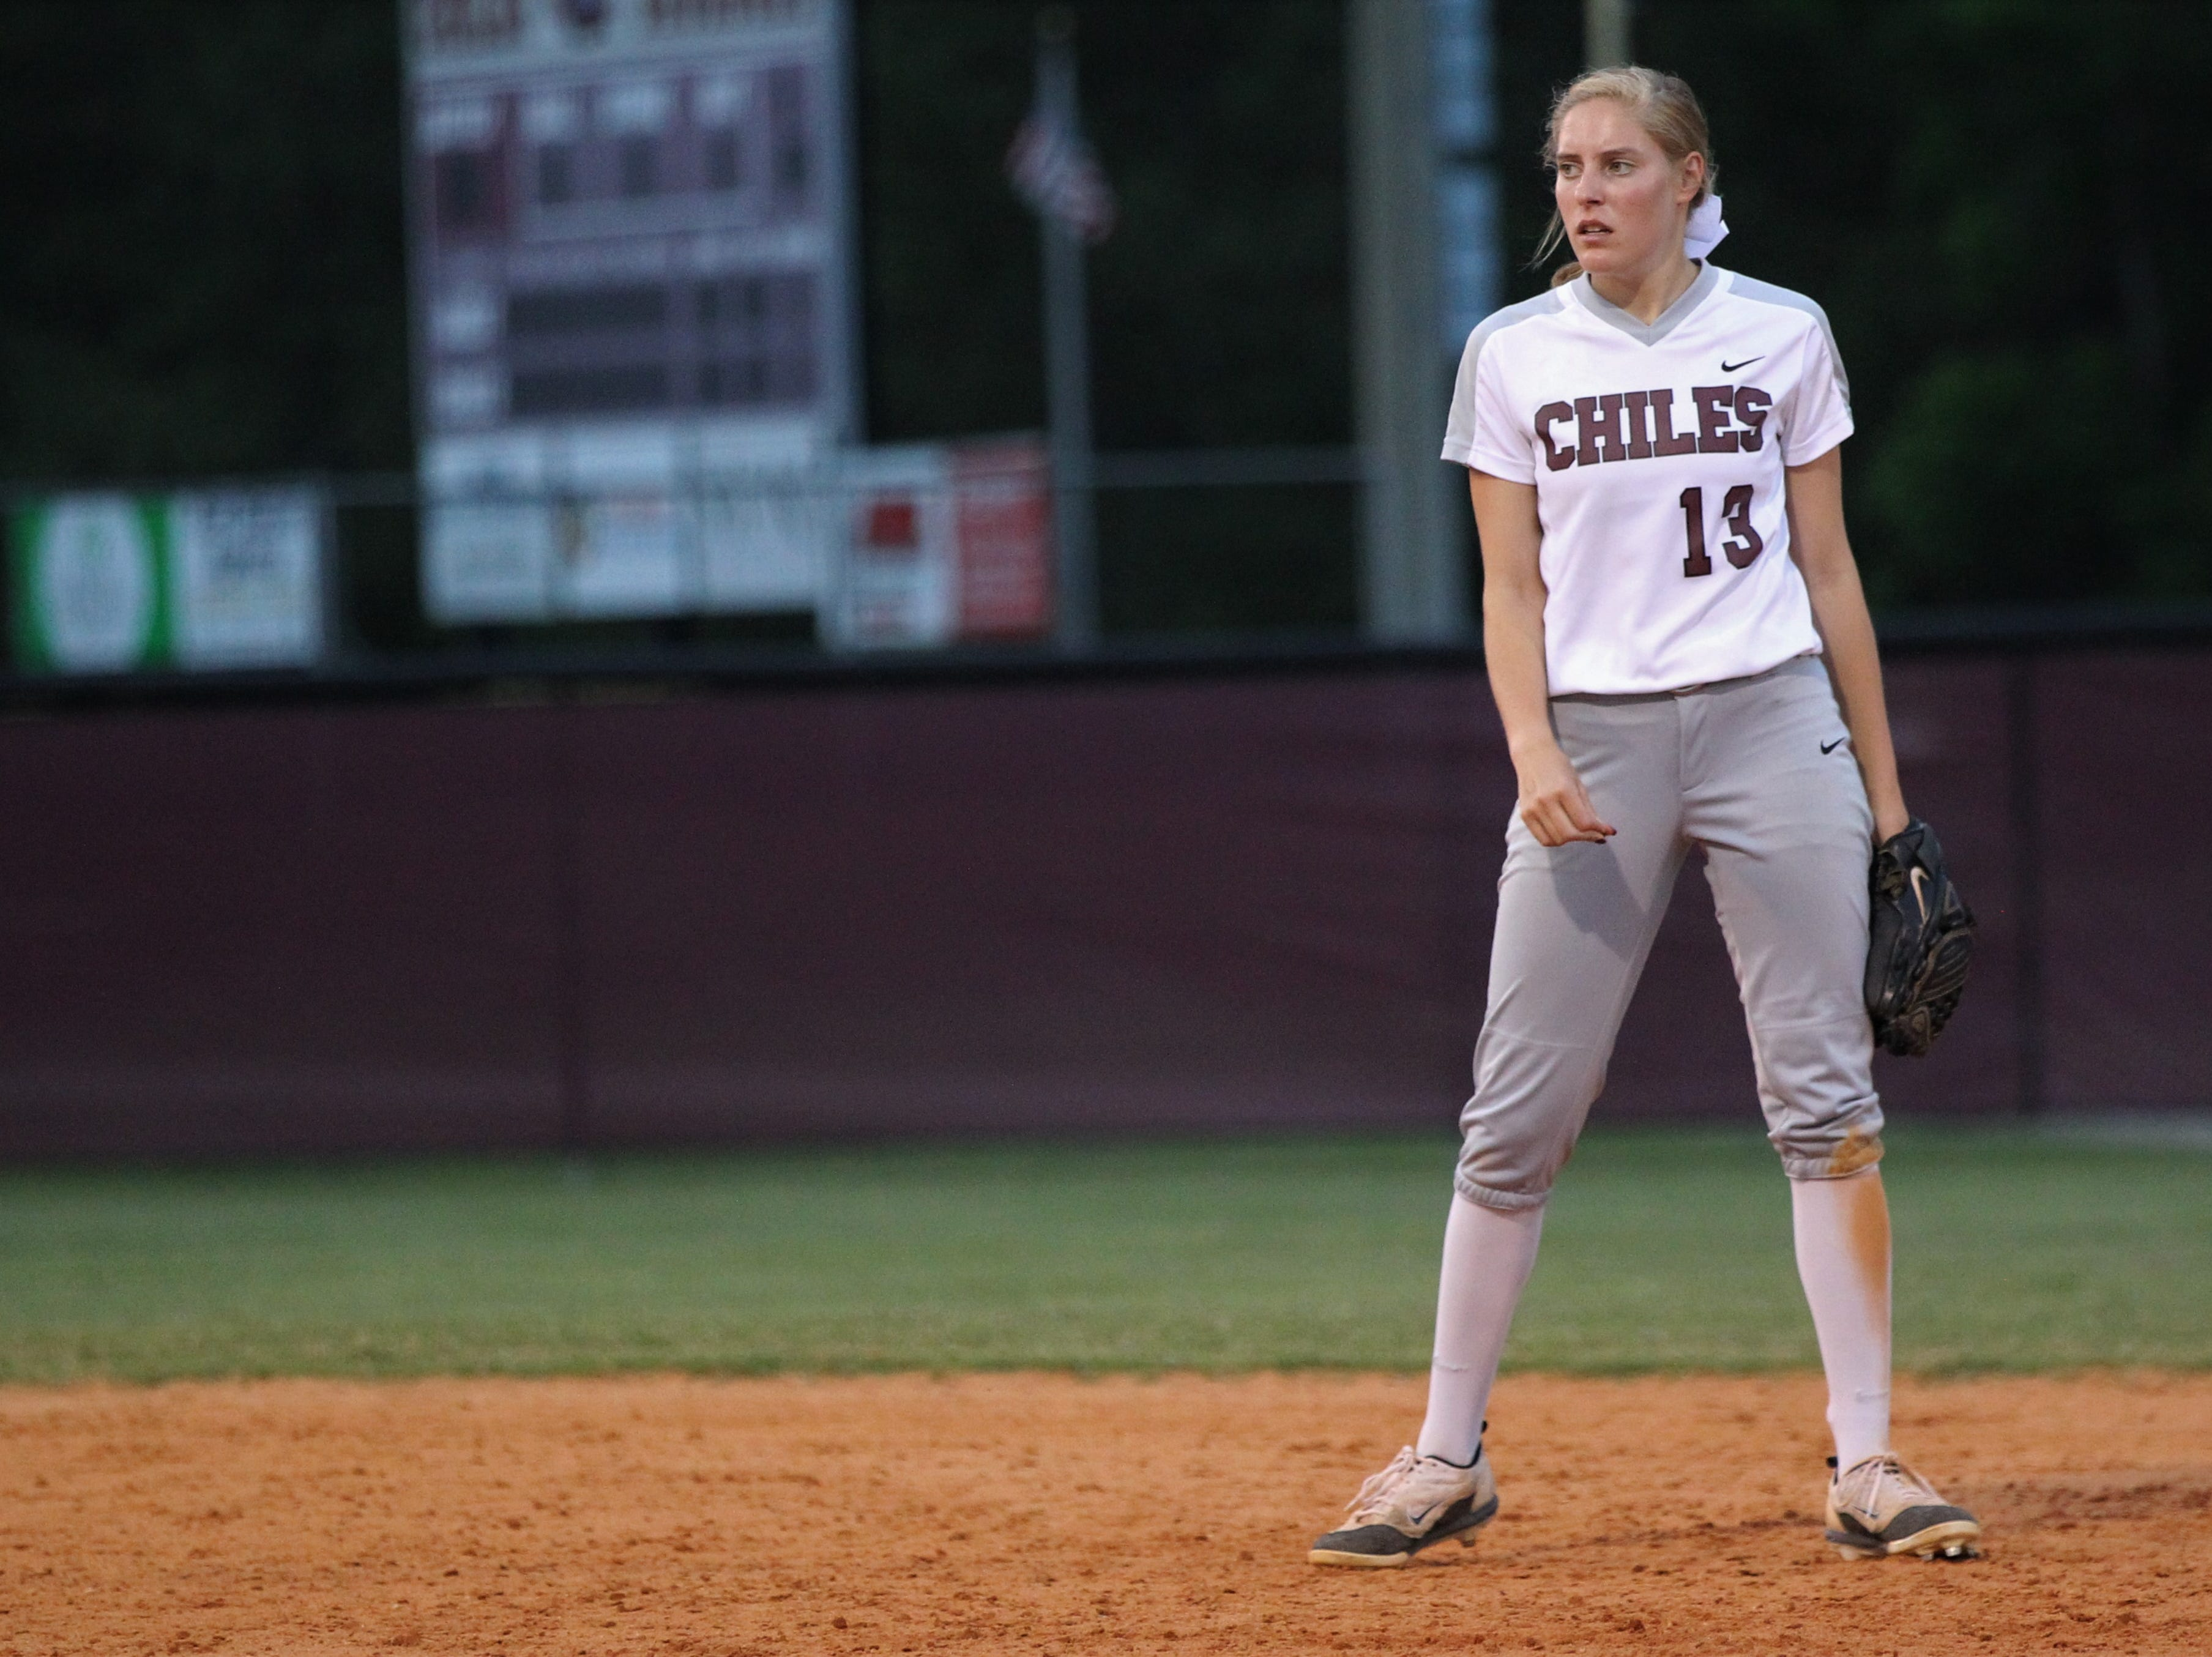 Chiles senior Kelsey Mead prepares for a next pitch at second base as the Timberwolves beat Atlantic Coast 6-4 during a Region 1-8A quarterfinal softball game on Wednesday, May 8, 2019.